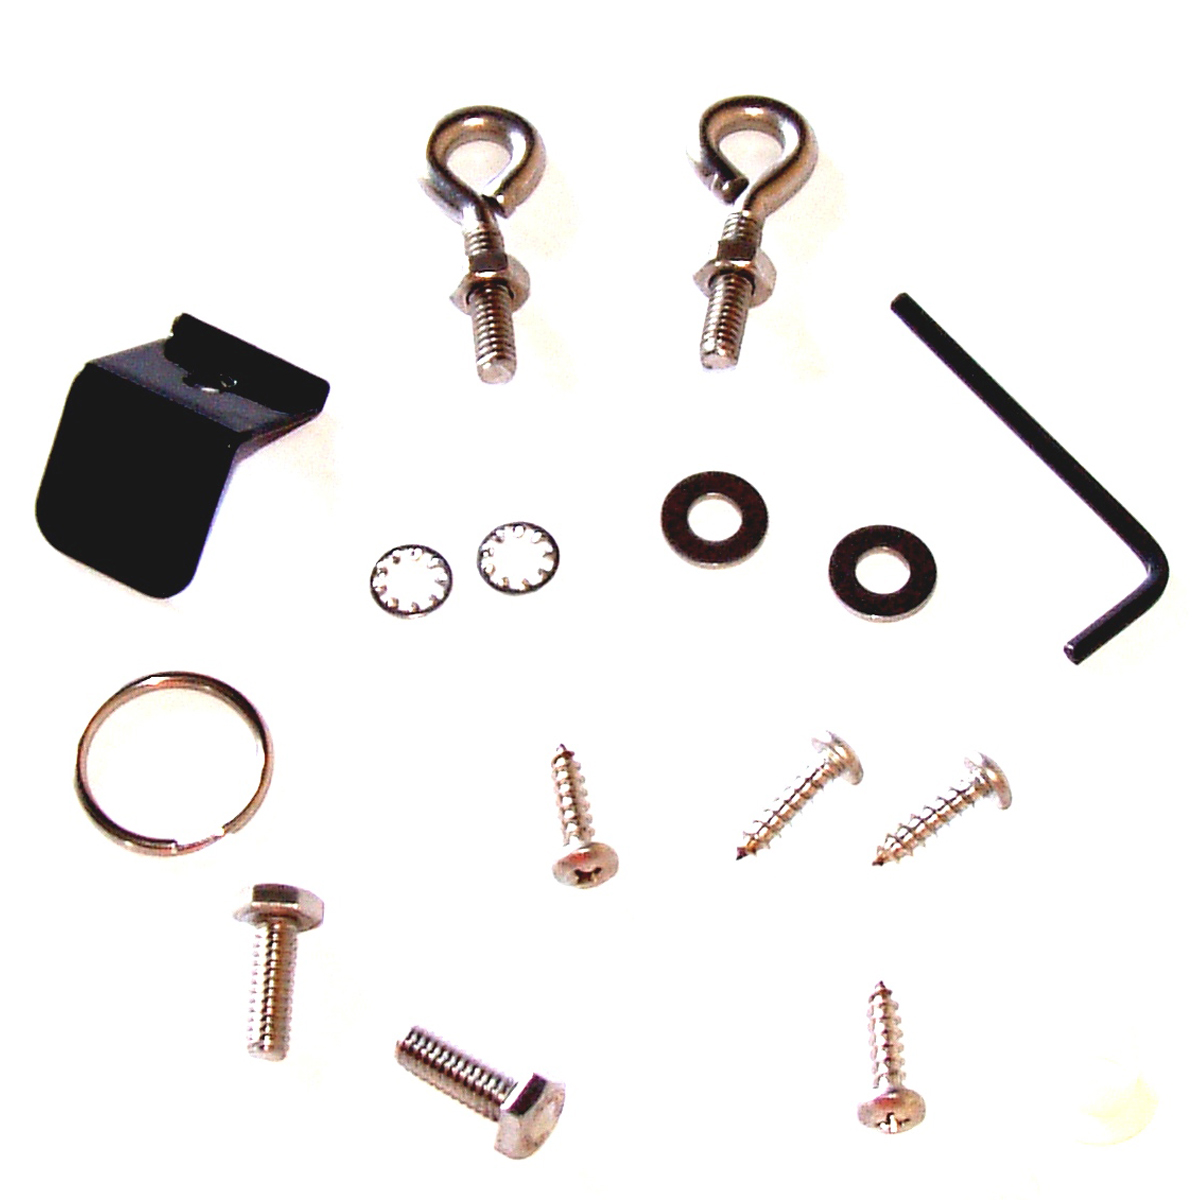 Stainless Steel Gate Mounting Accessories for Outdoors